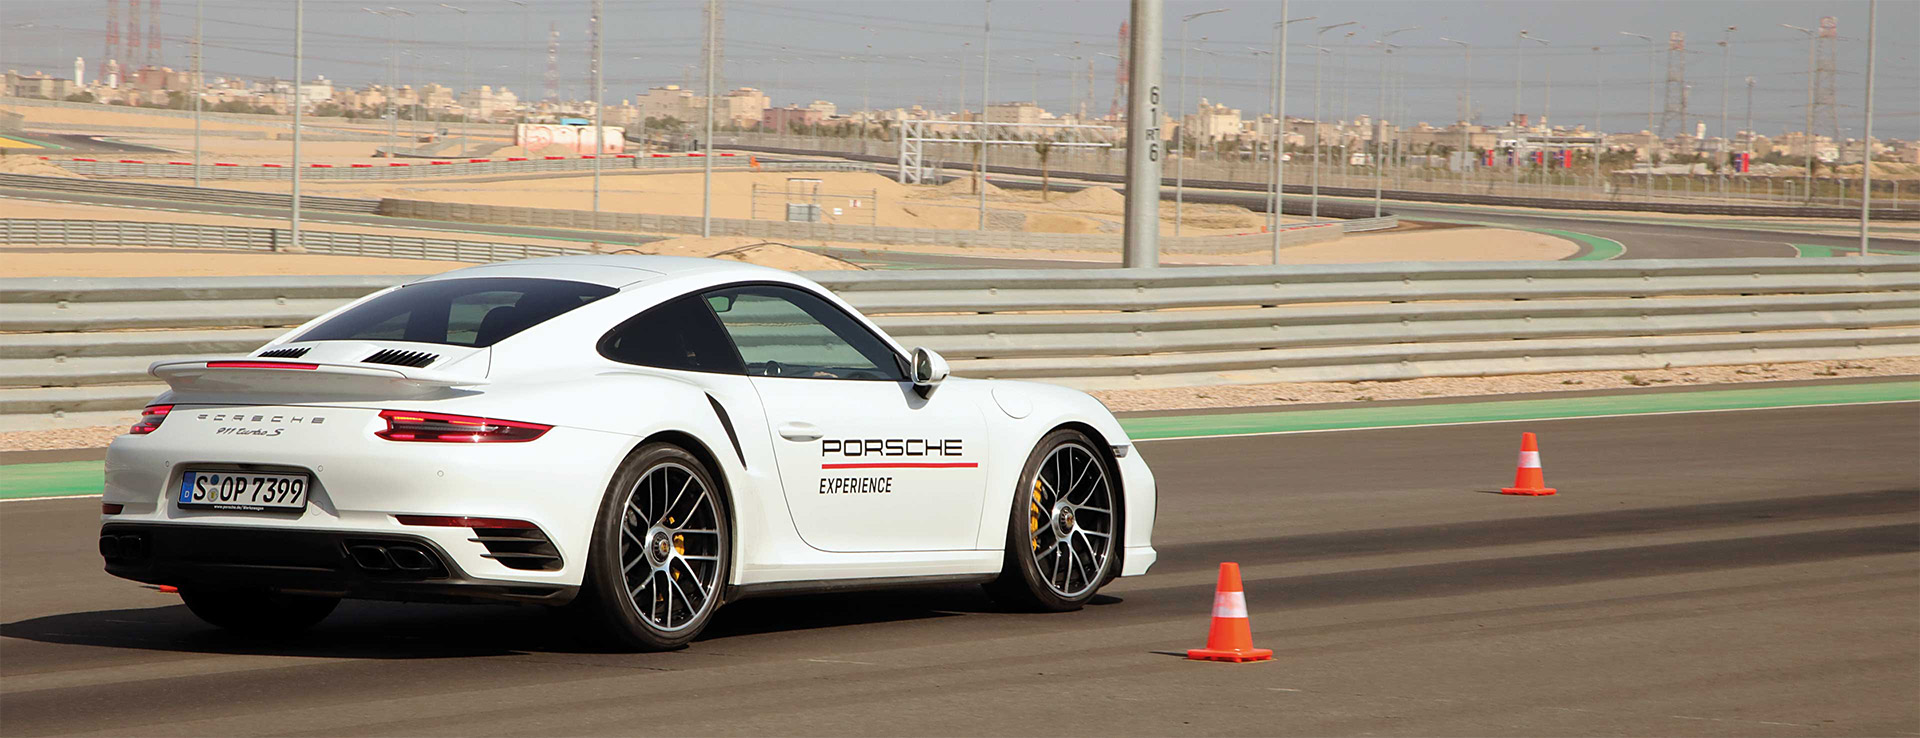 Porsche takes the racetrack in Kuwait.